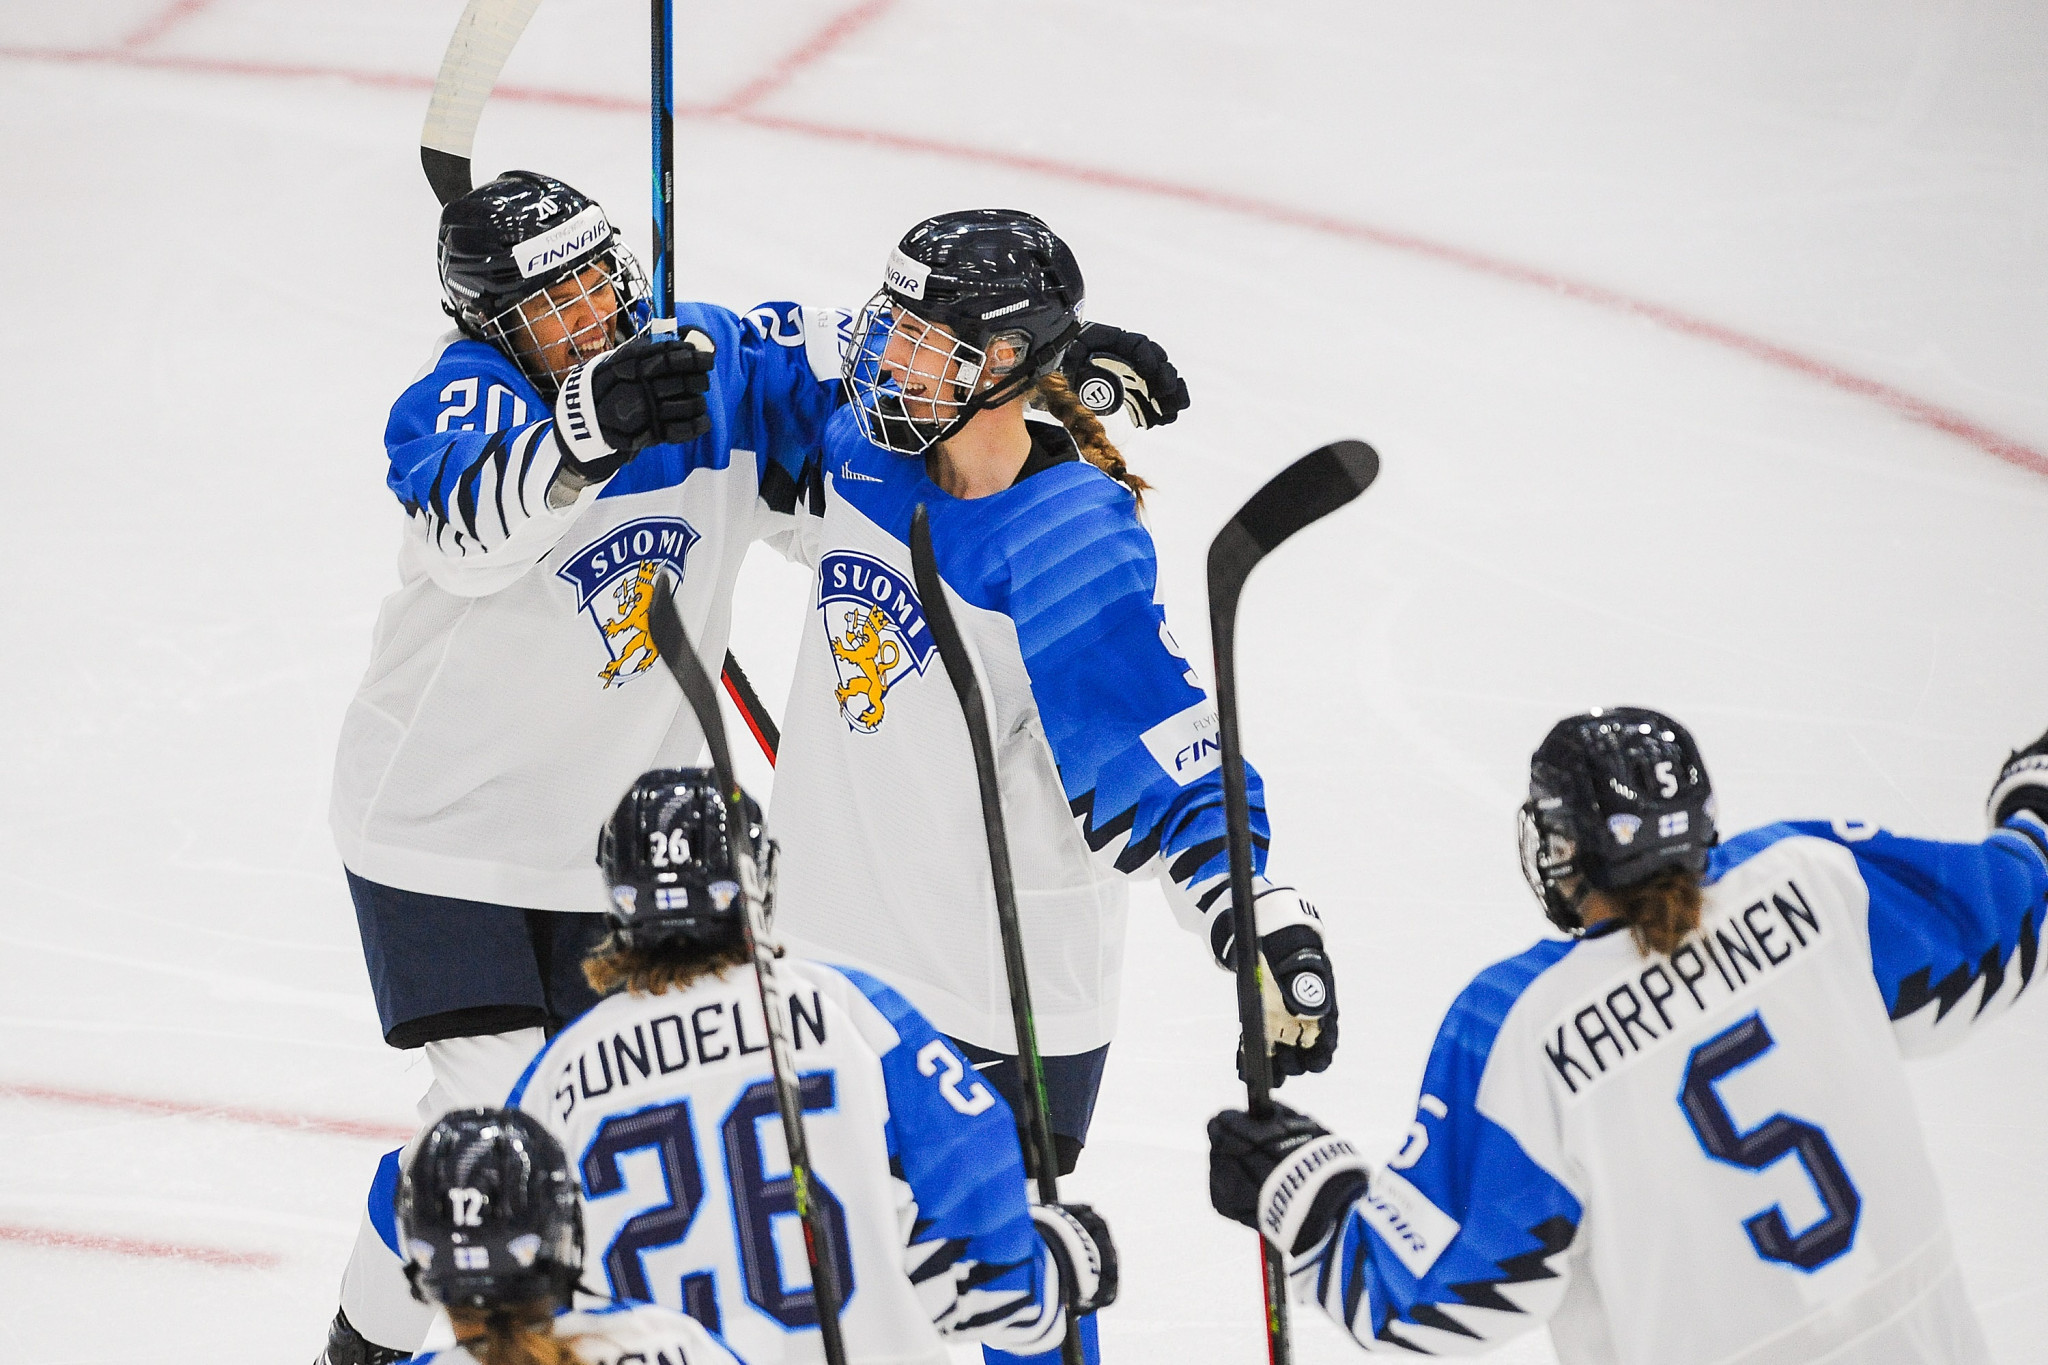 Finnish Ice Hockey Association President Harry Nummela wants to see change to the IIHF Council ©Getty Images